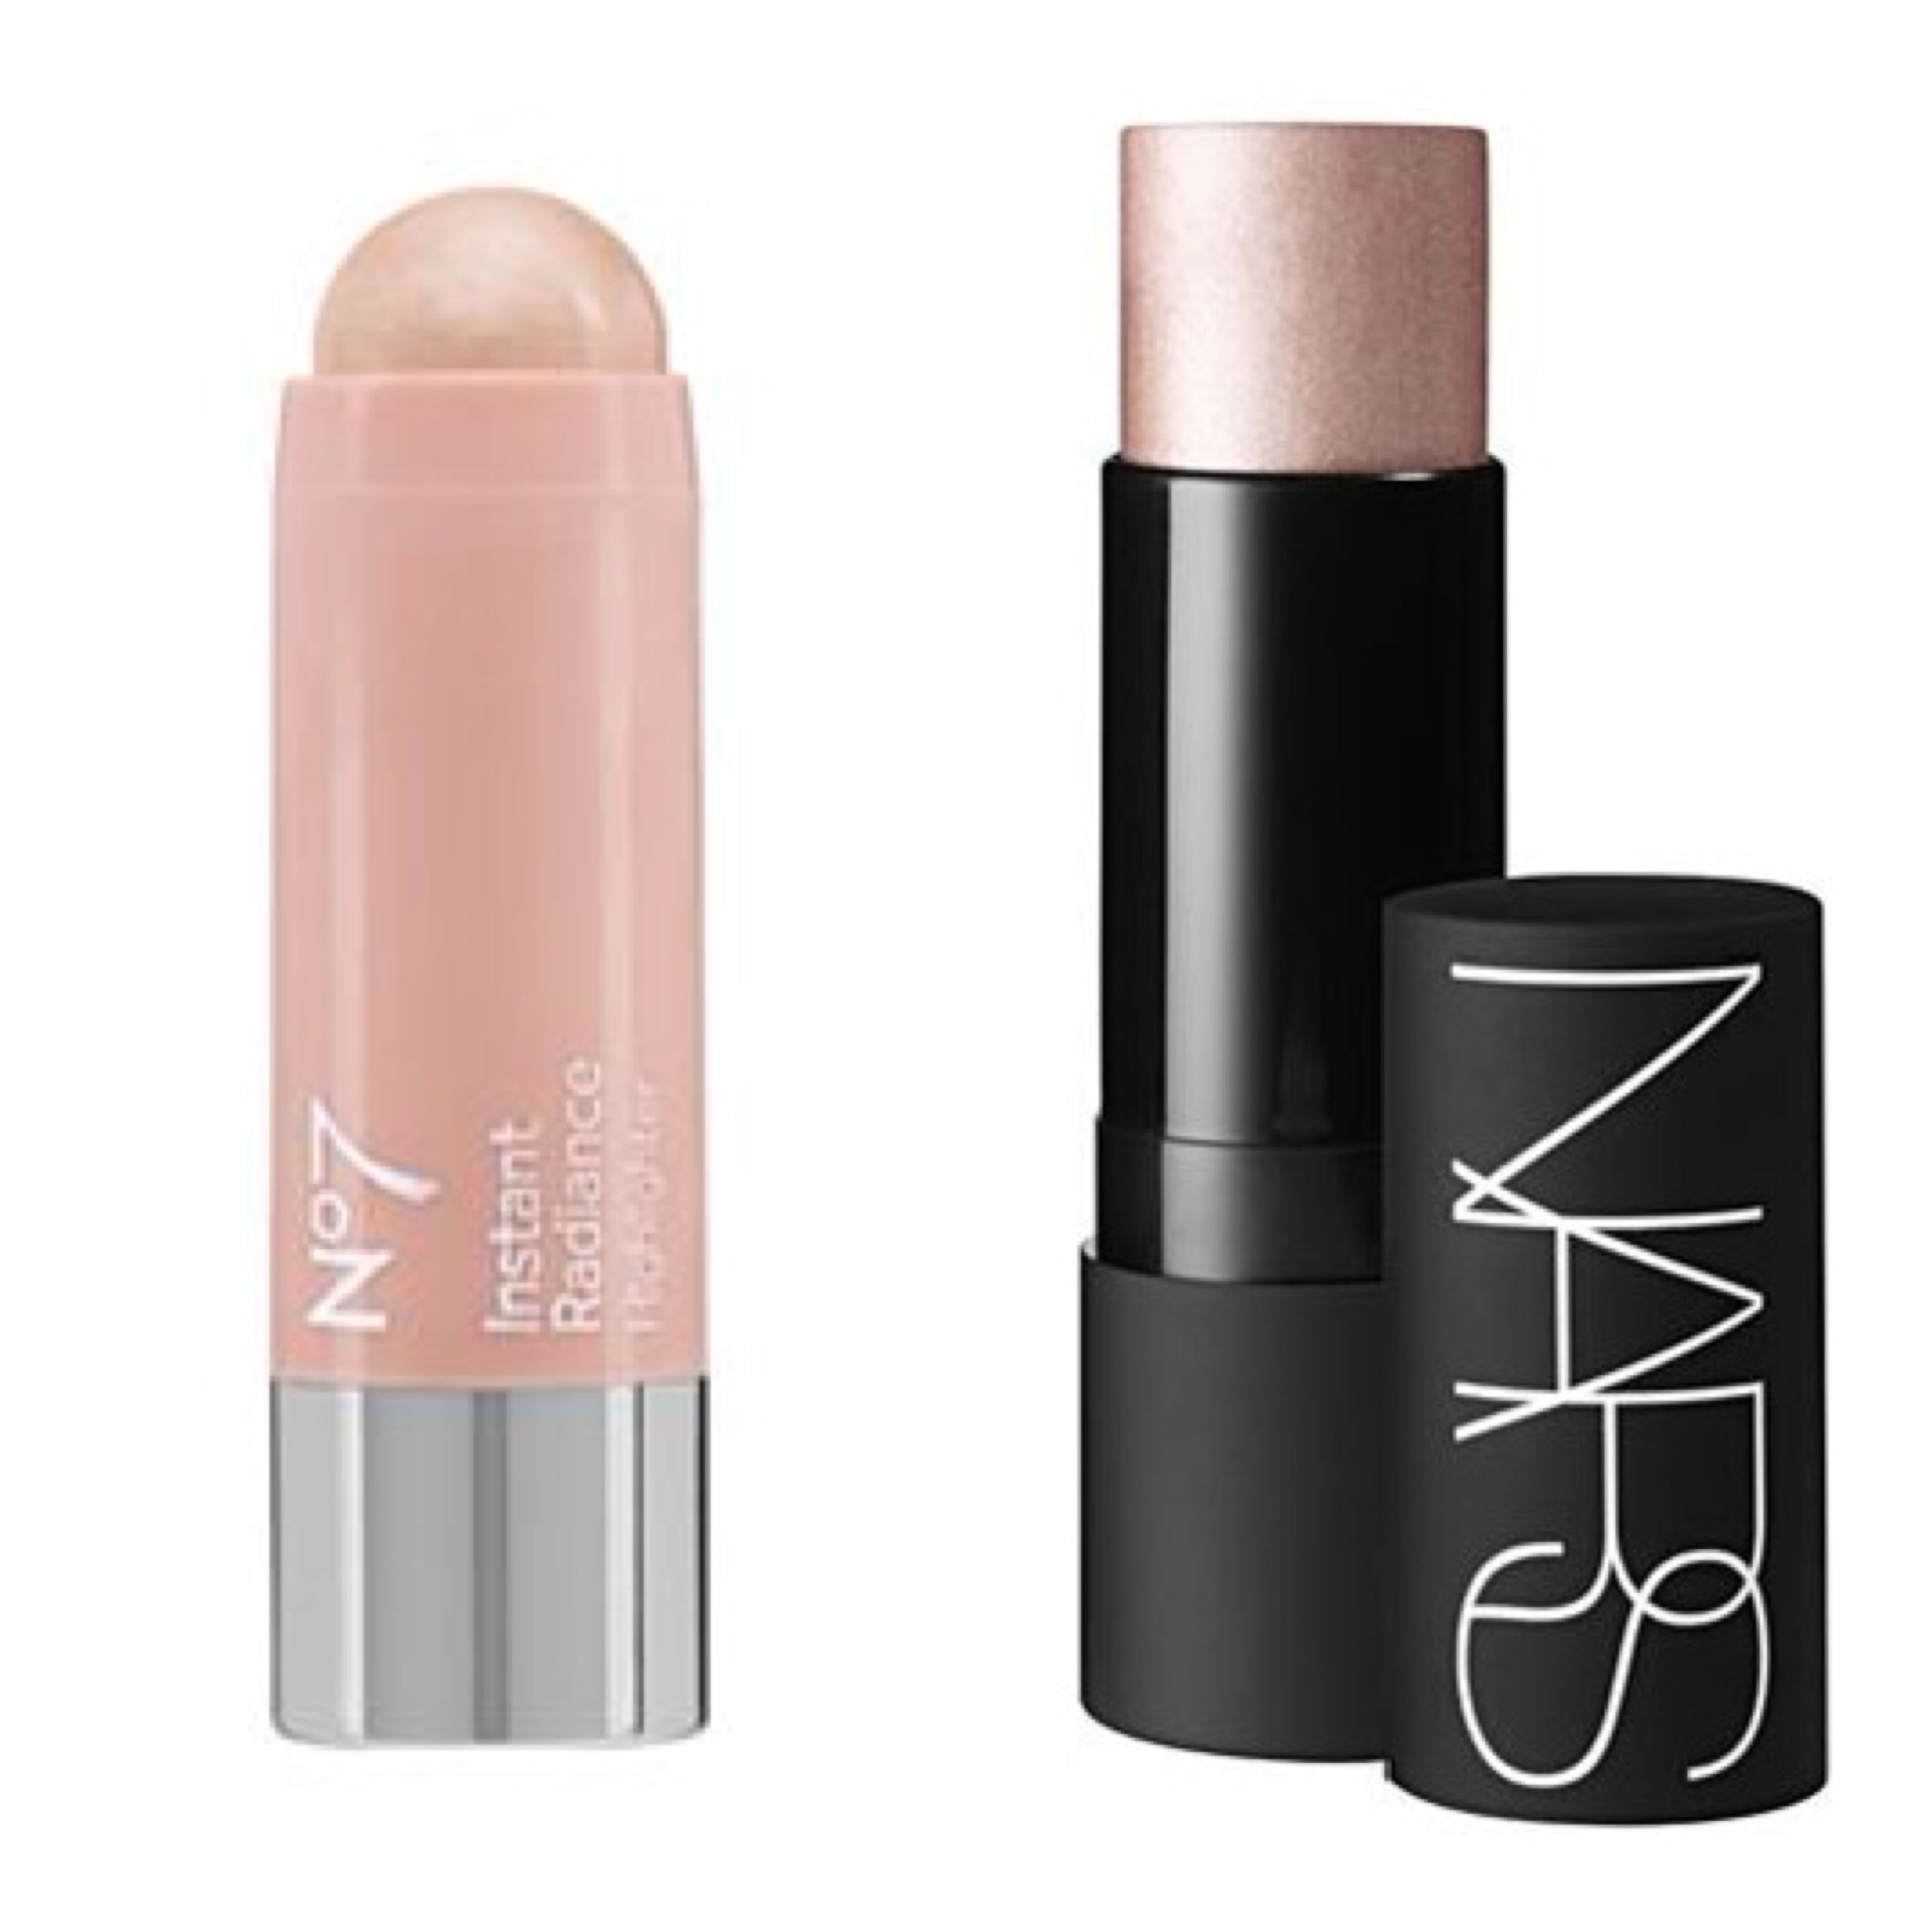 nars multiple copacabana how to use